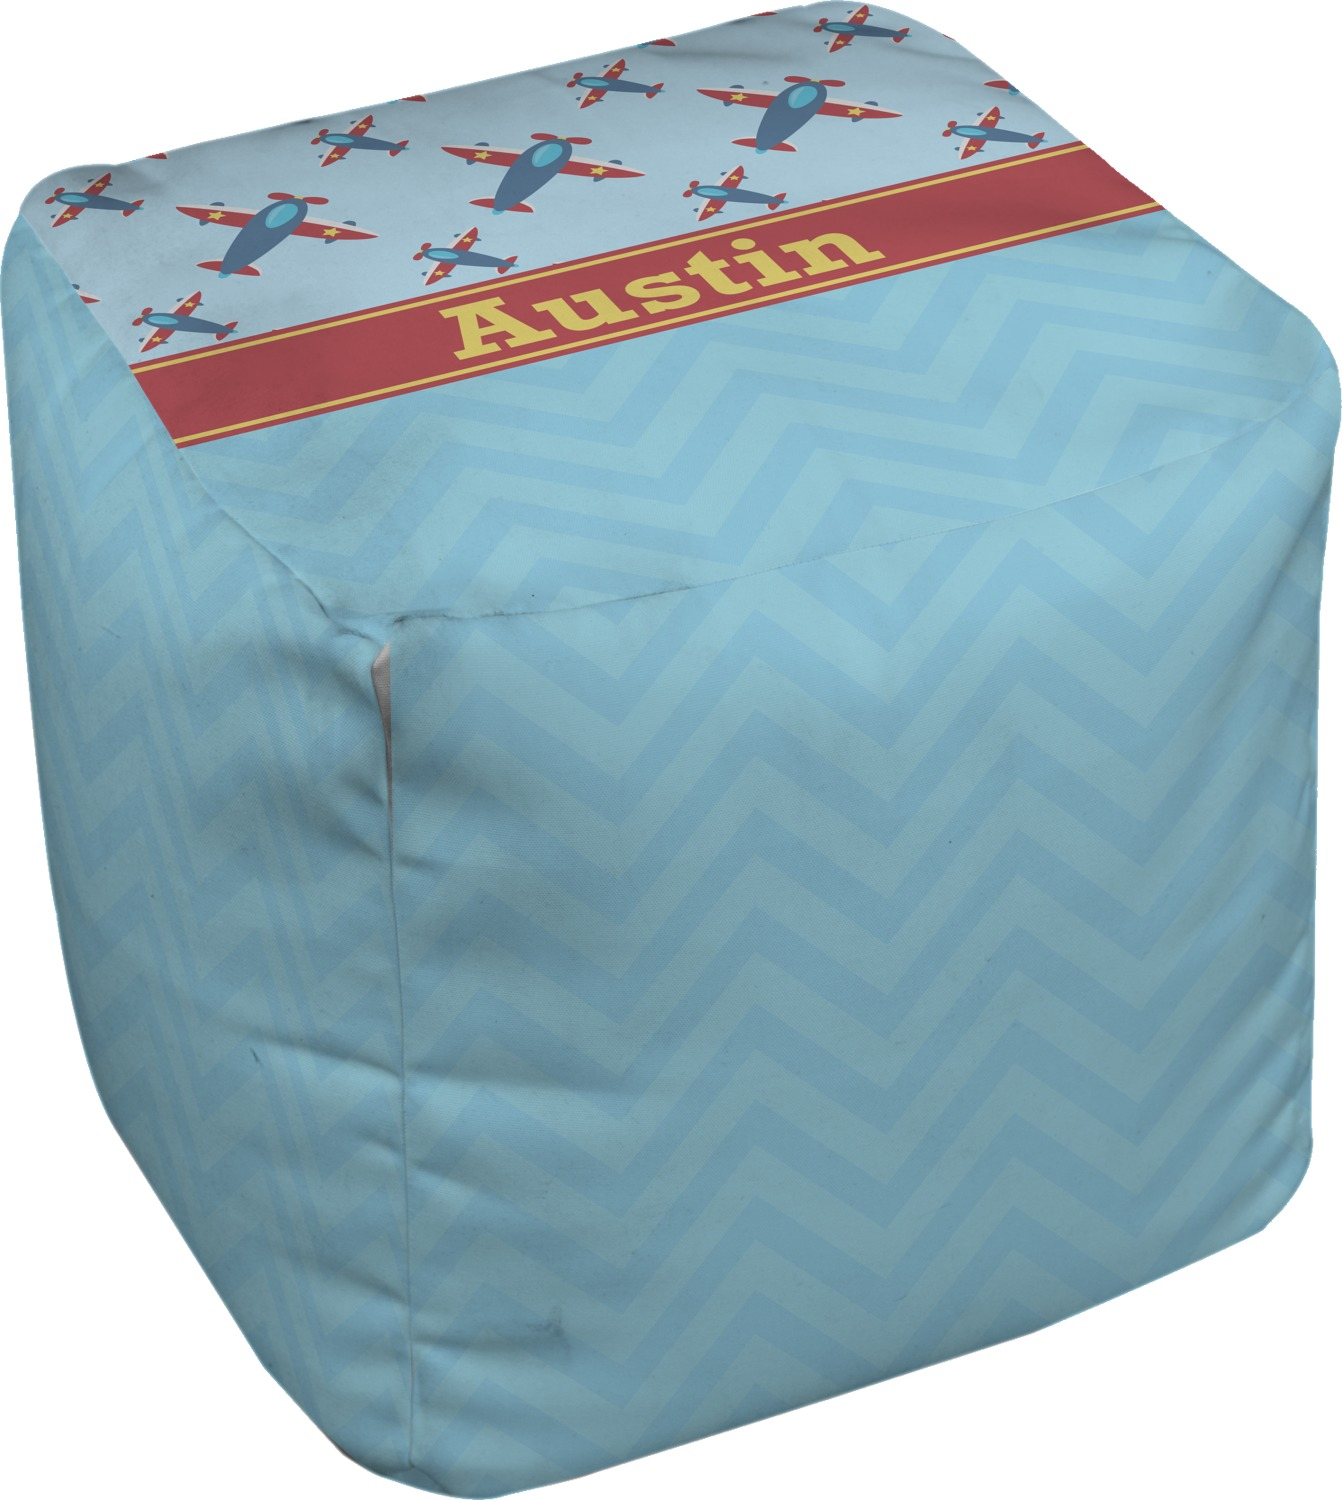 airplane theme cube pouf ottoman 13 personalized. Black Bedroom Furniture Sets. Home Design Ideas